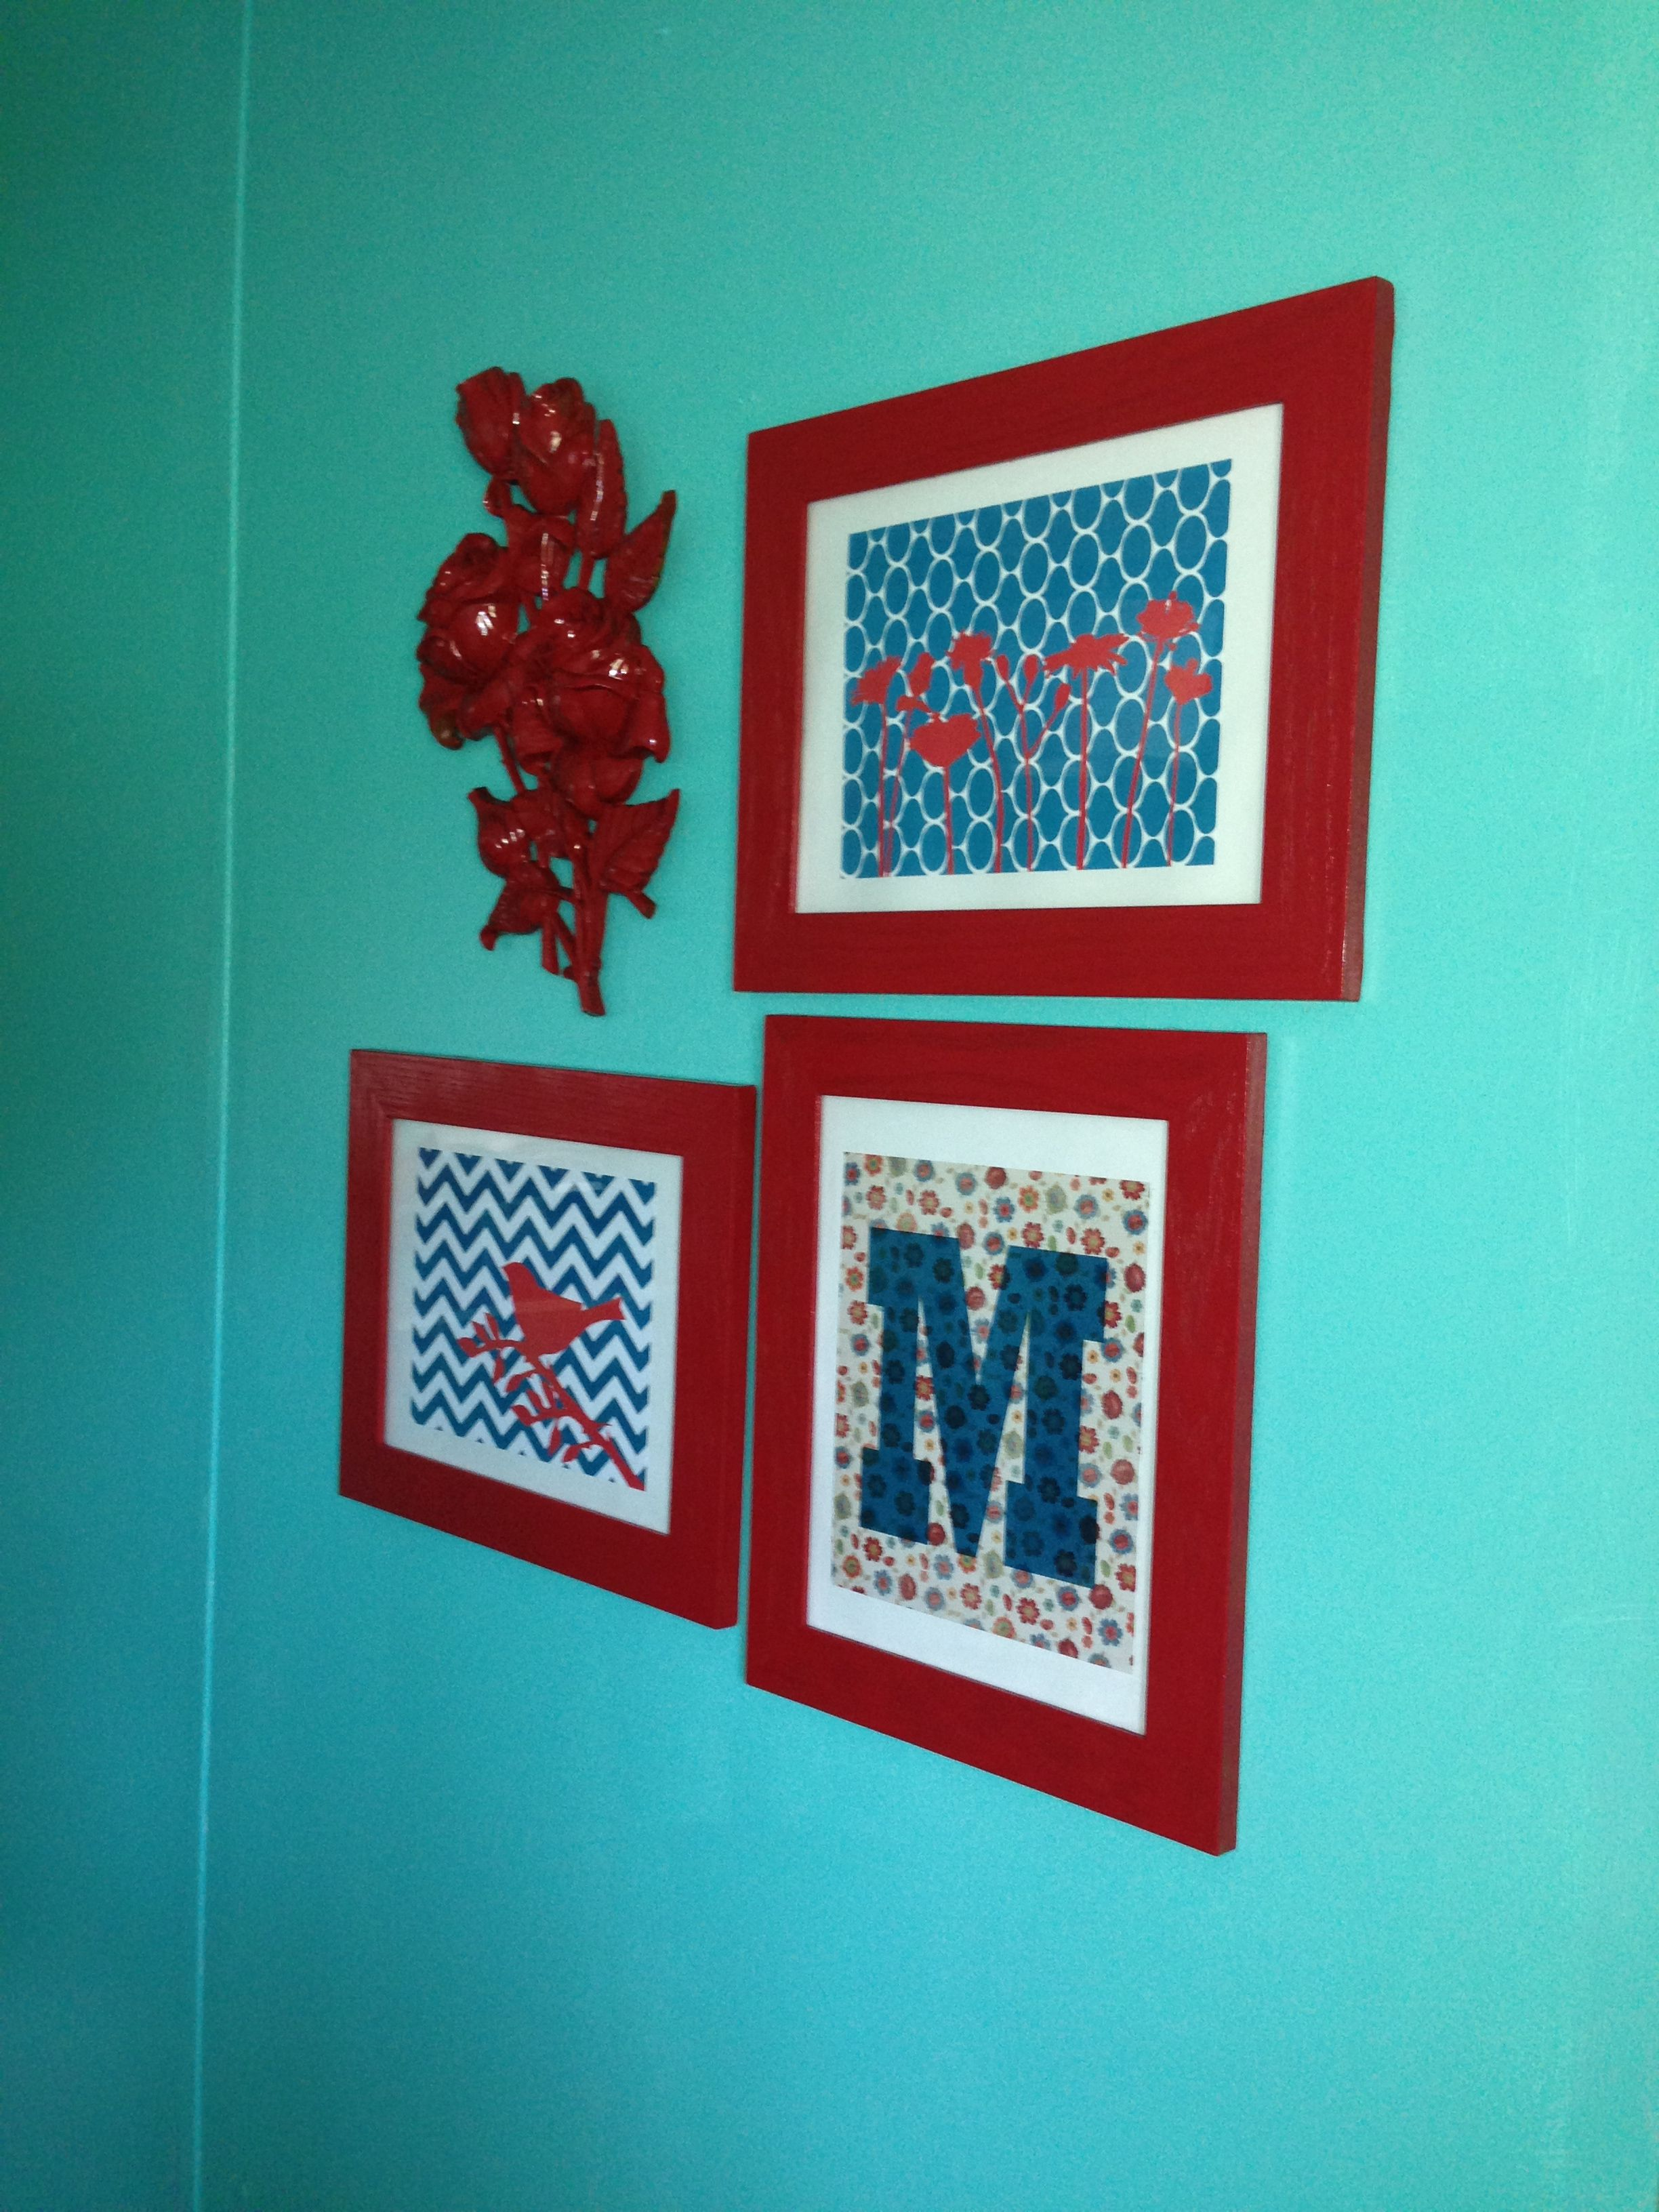 Retro Kitchen Wall Decor Teal And Red Wall Decor Home Decor Pinterest The Ojays